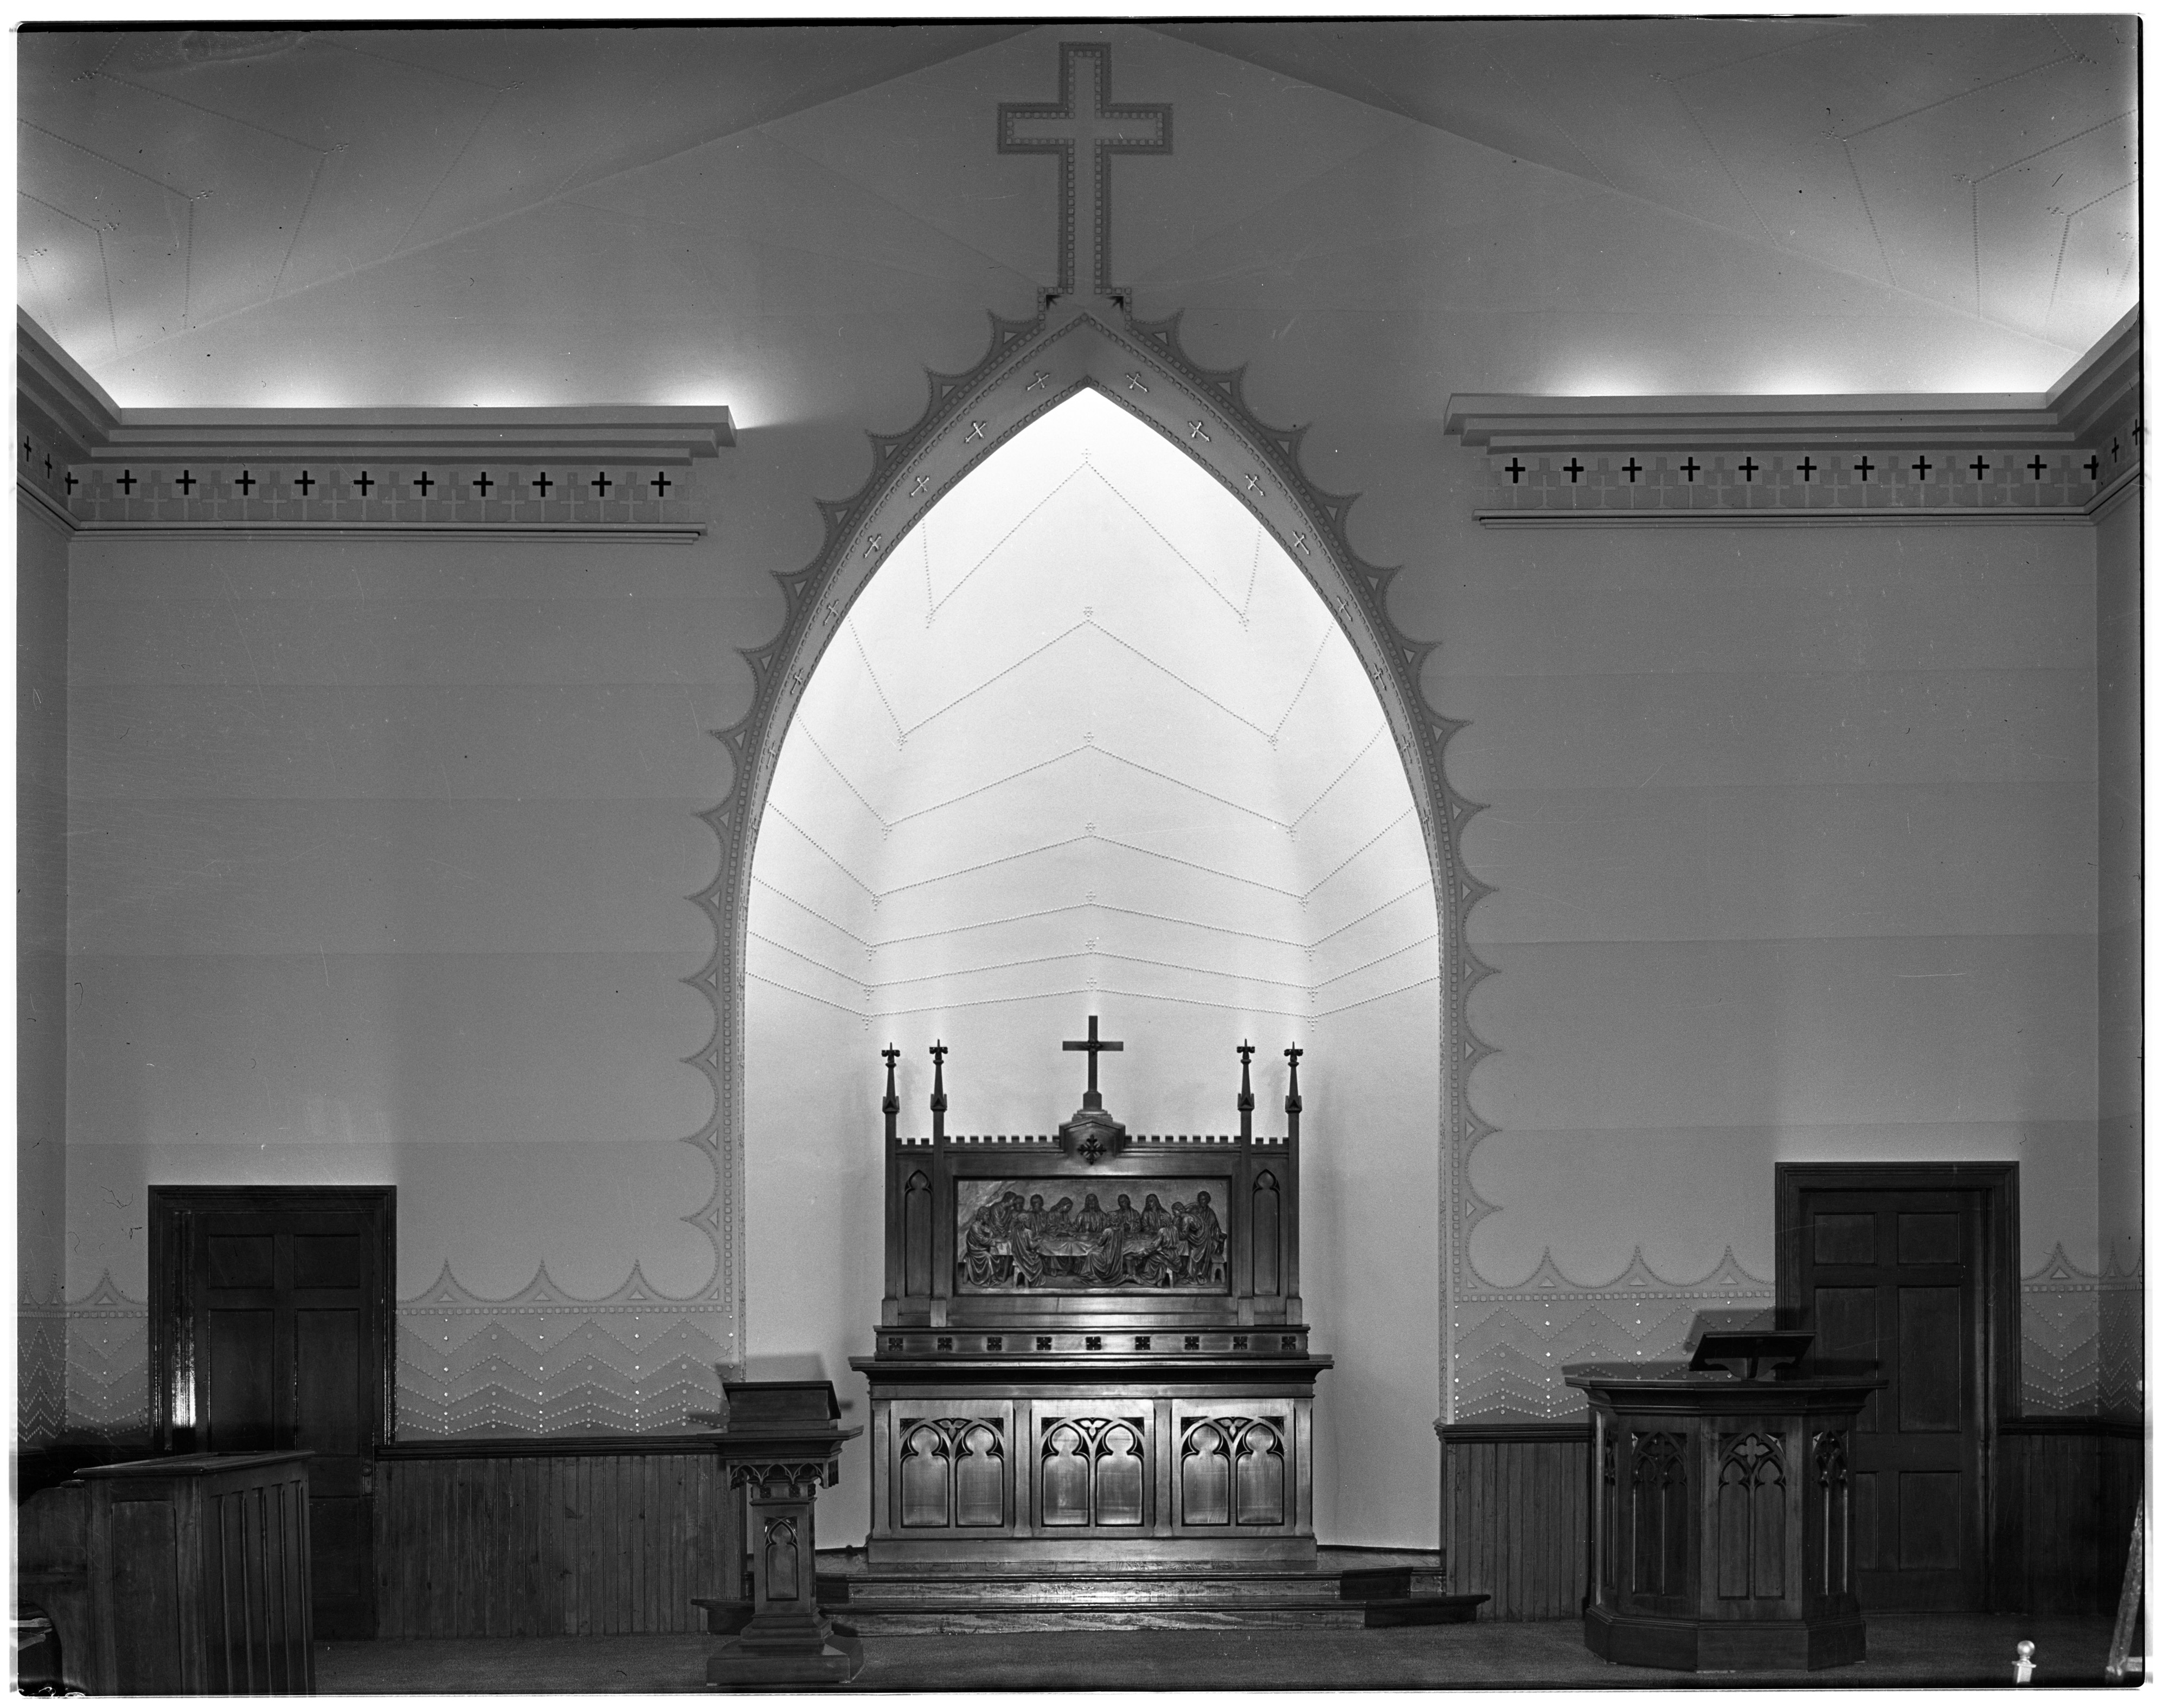 St. Andrew's United Church of Christ, Dexter, February 1938 image